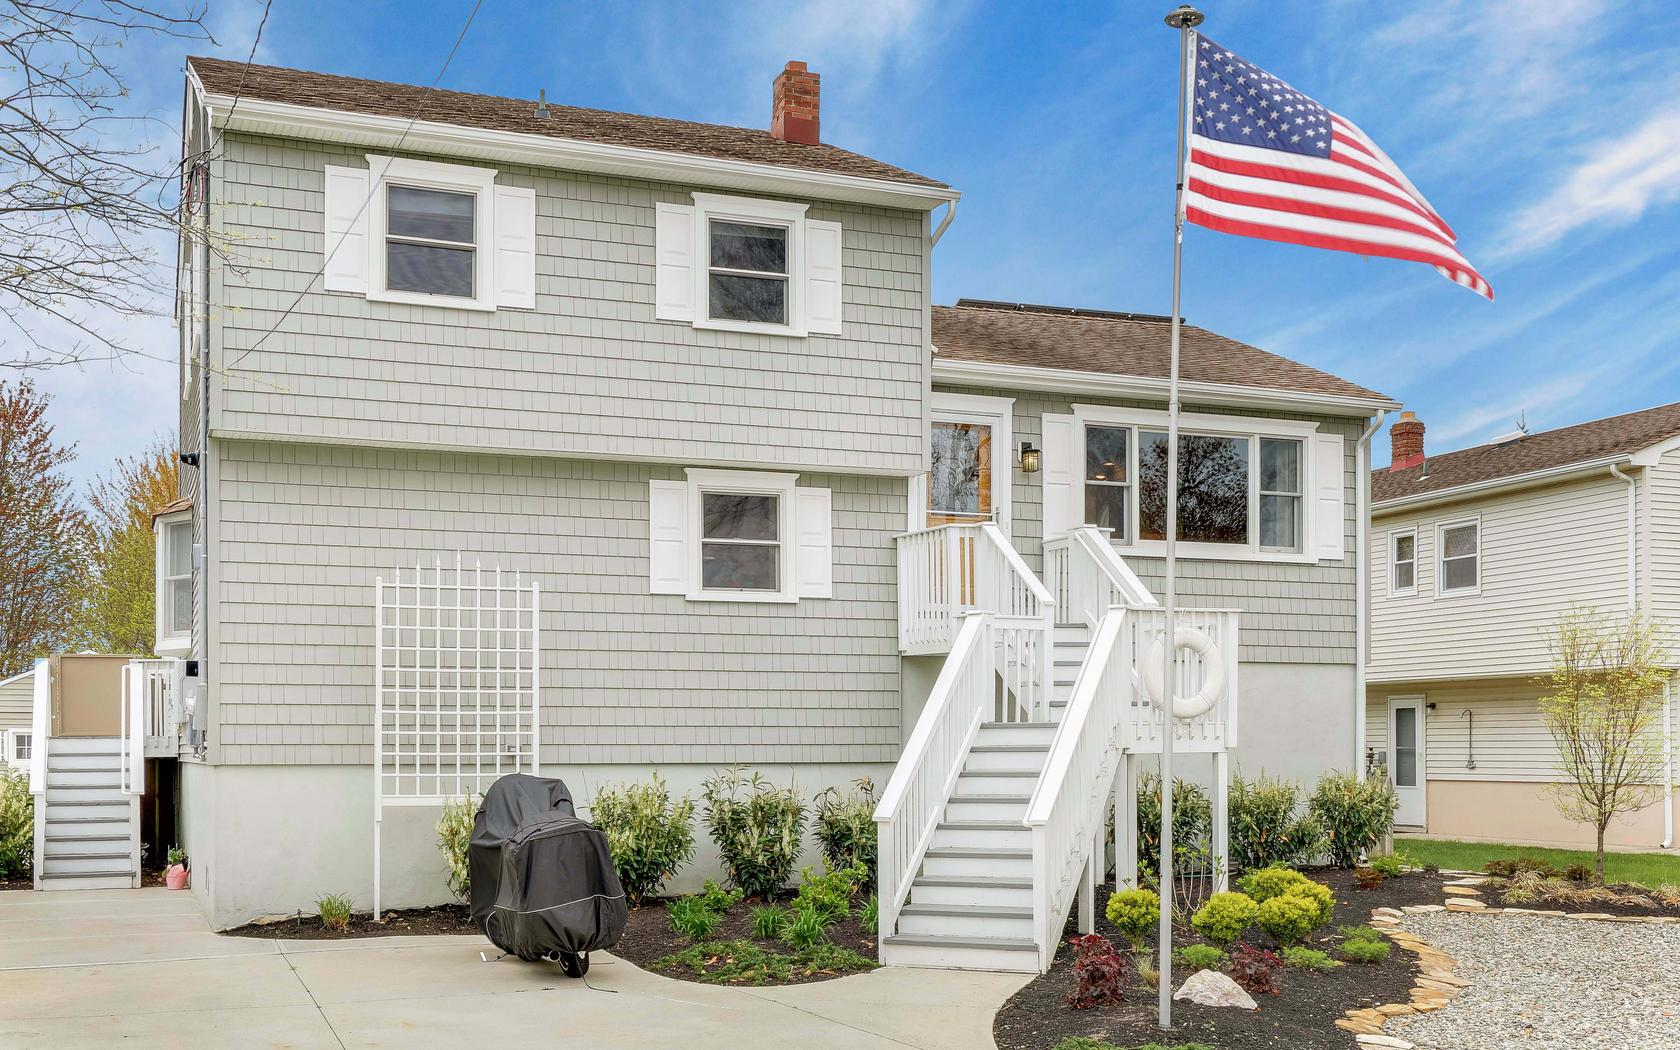 Single Family Home for Sale at Completely Redone Beach Home 351 E Virginia Ave Manasquan, New Jersey, 08736 United States